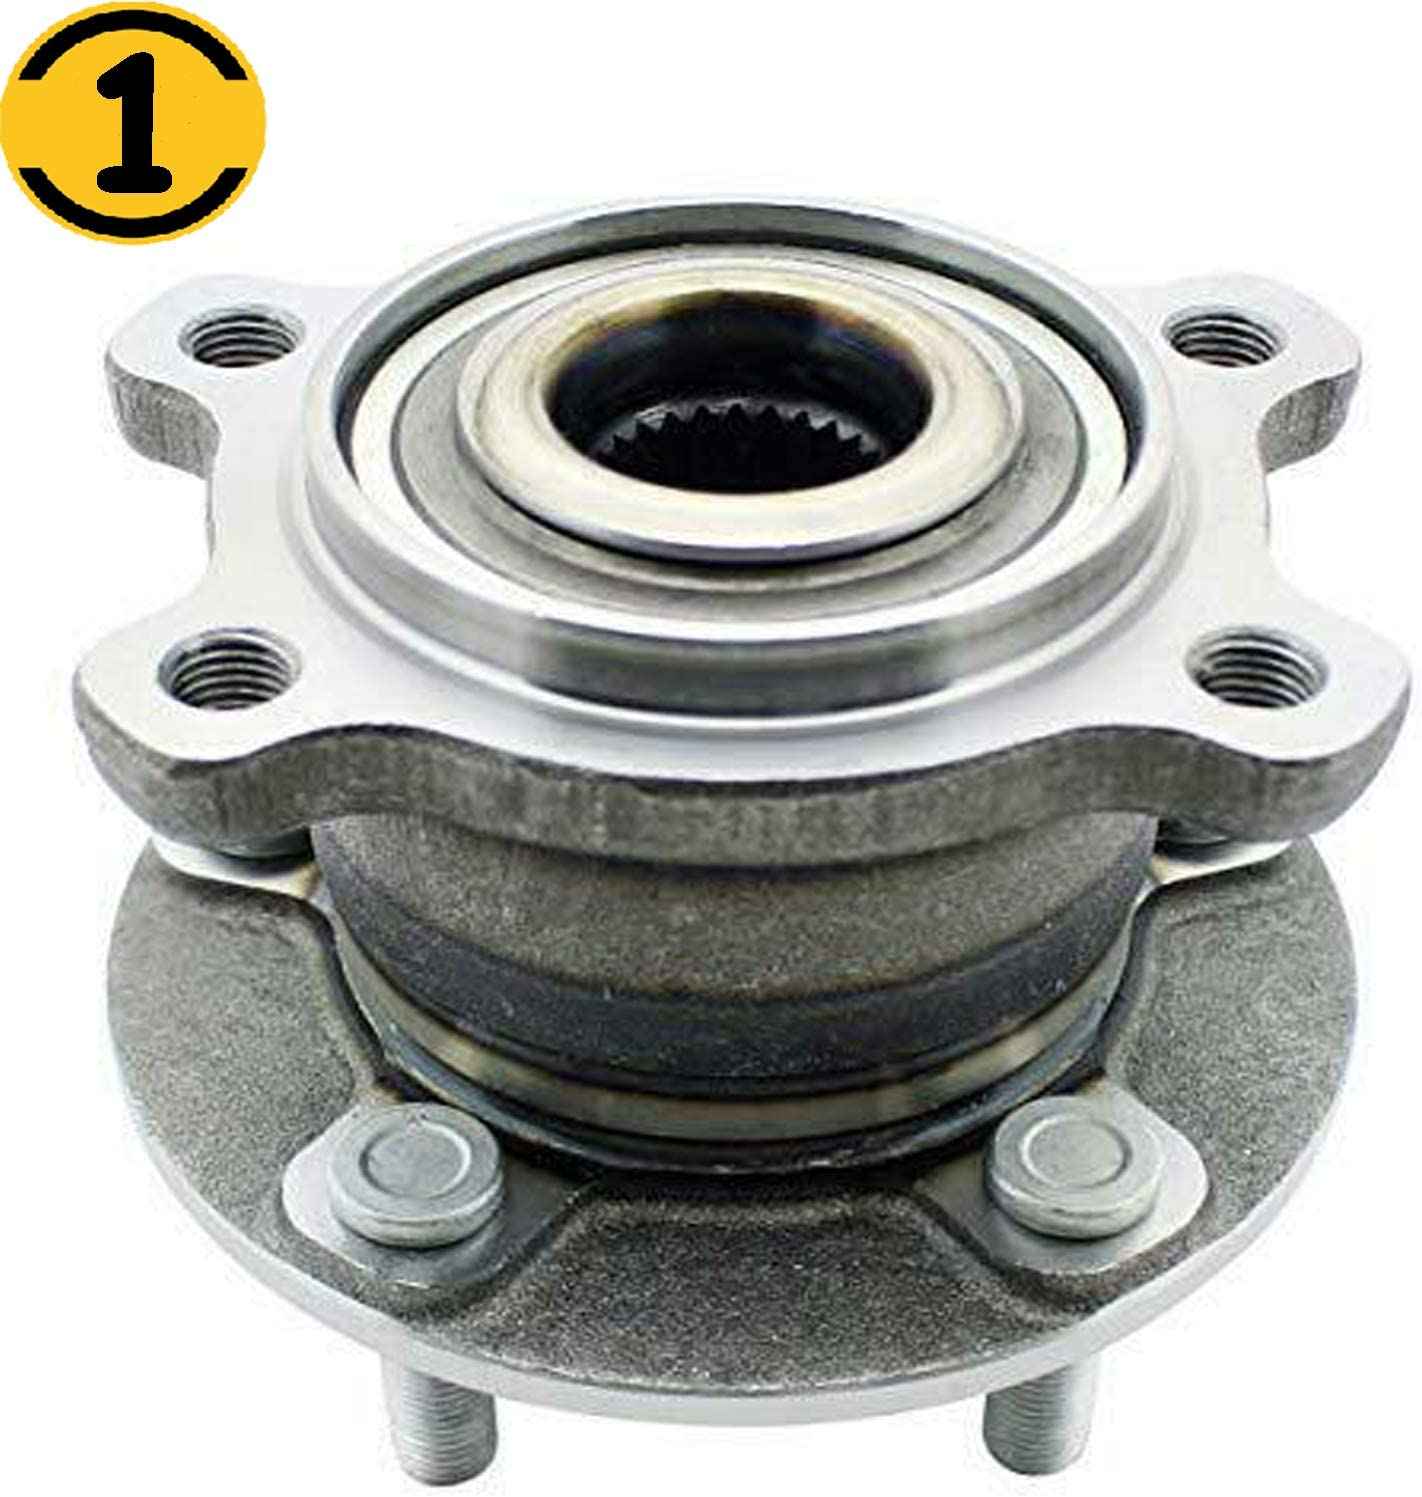 2014 Fits Ford Escape Rear Wheel Bearing and Hub Assembly x 2